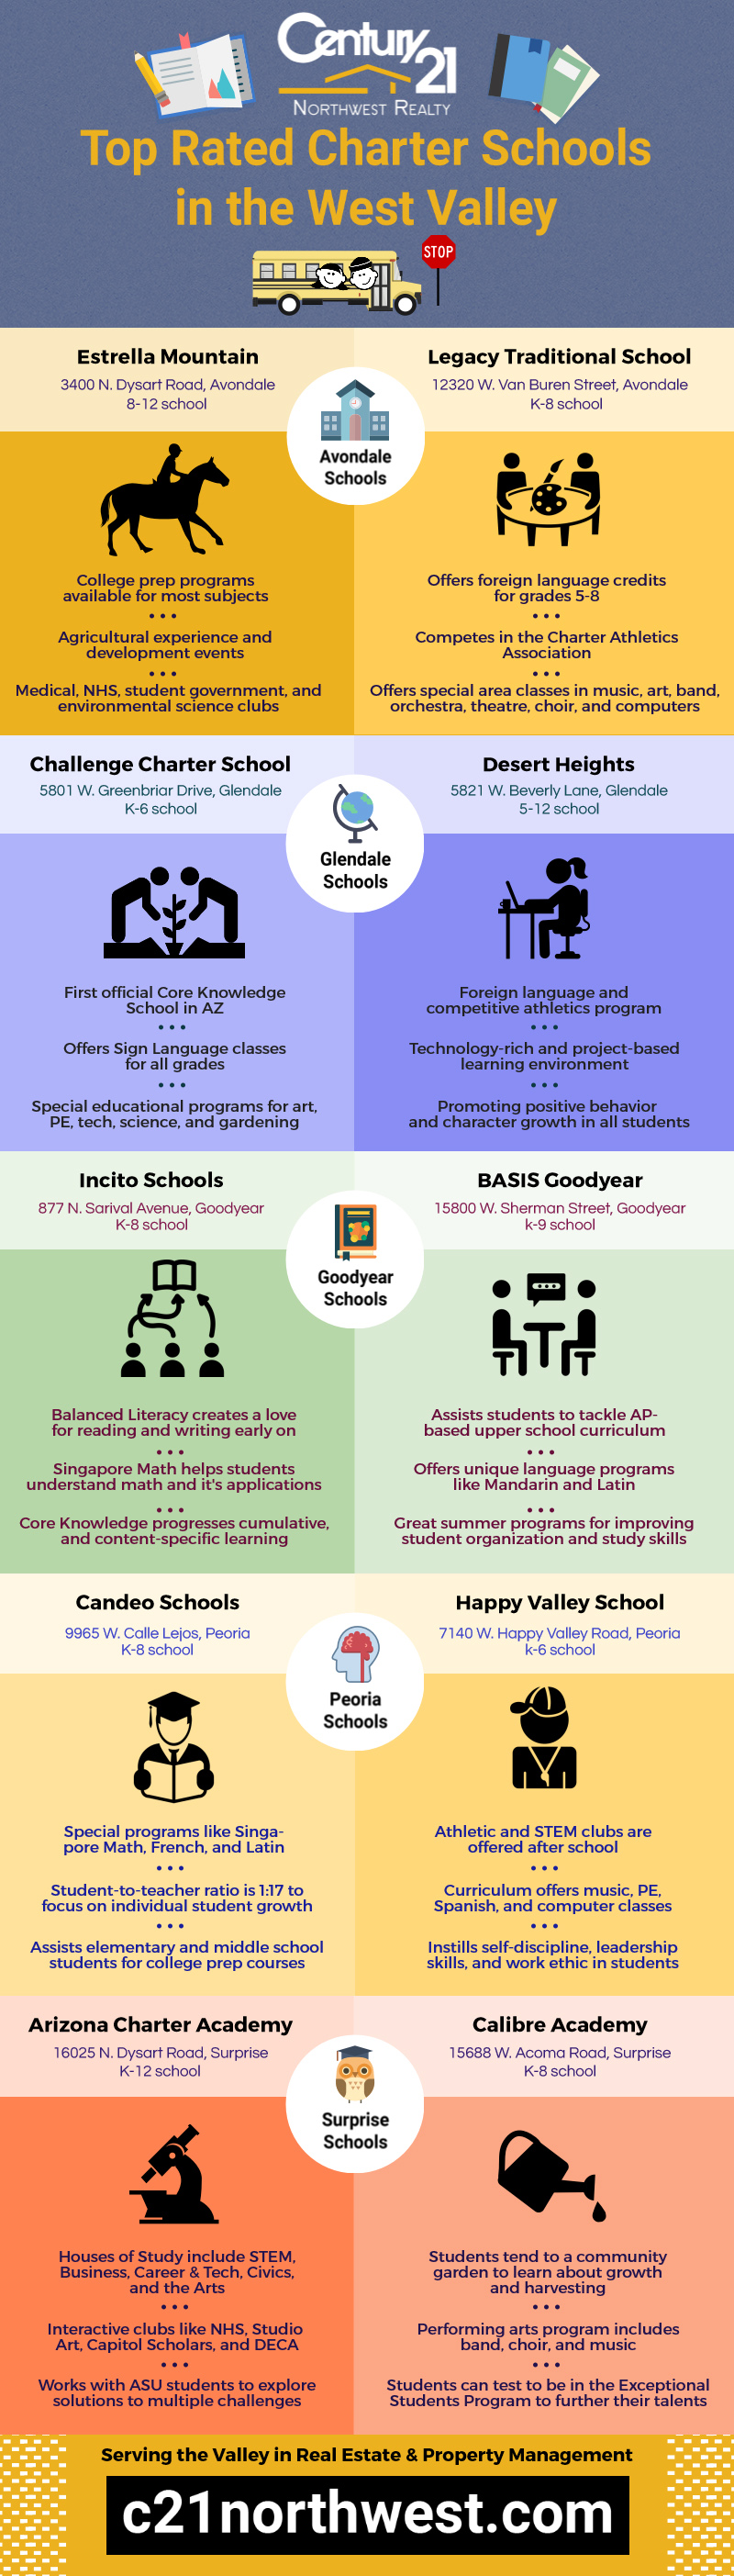 TopRated West Valley Charter Schools (Infographic